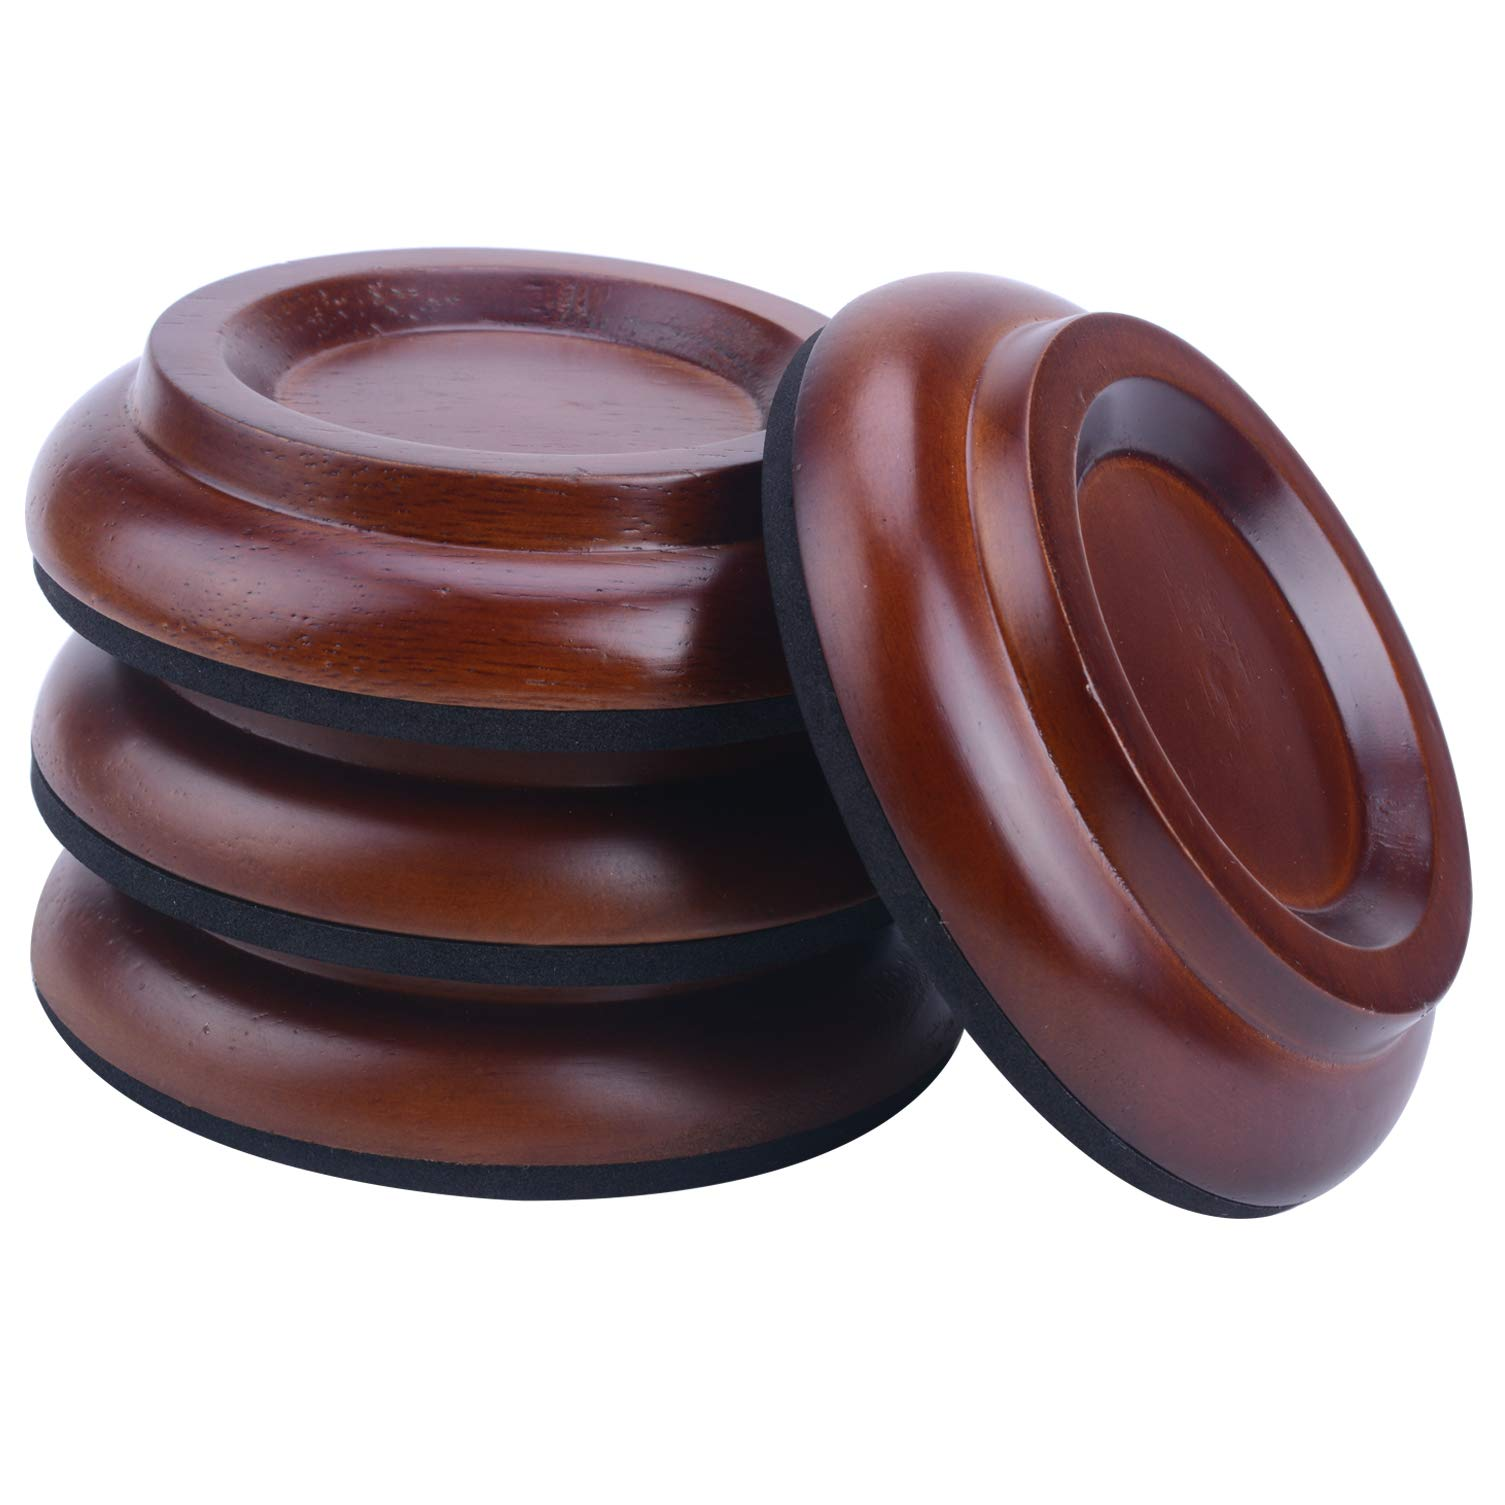 Piano Caster Cups Upright Piano Caster Cups Wood coasters Cups